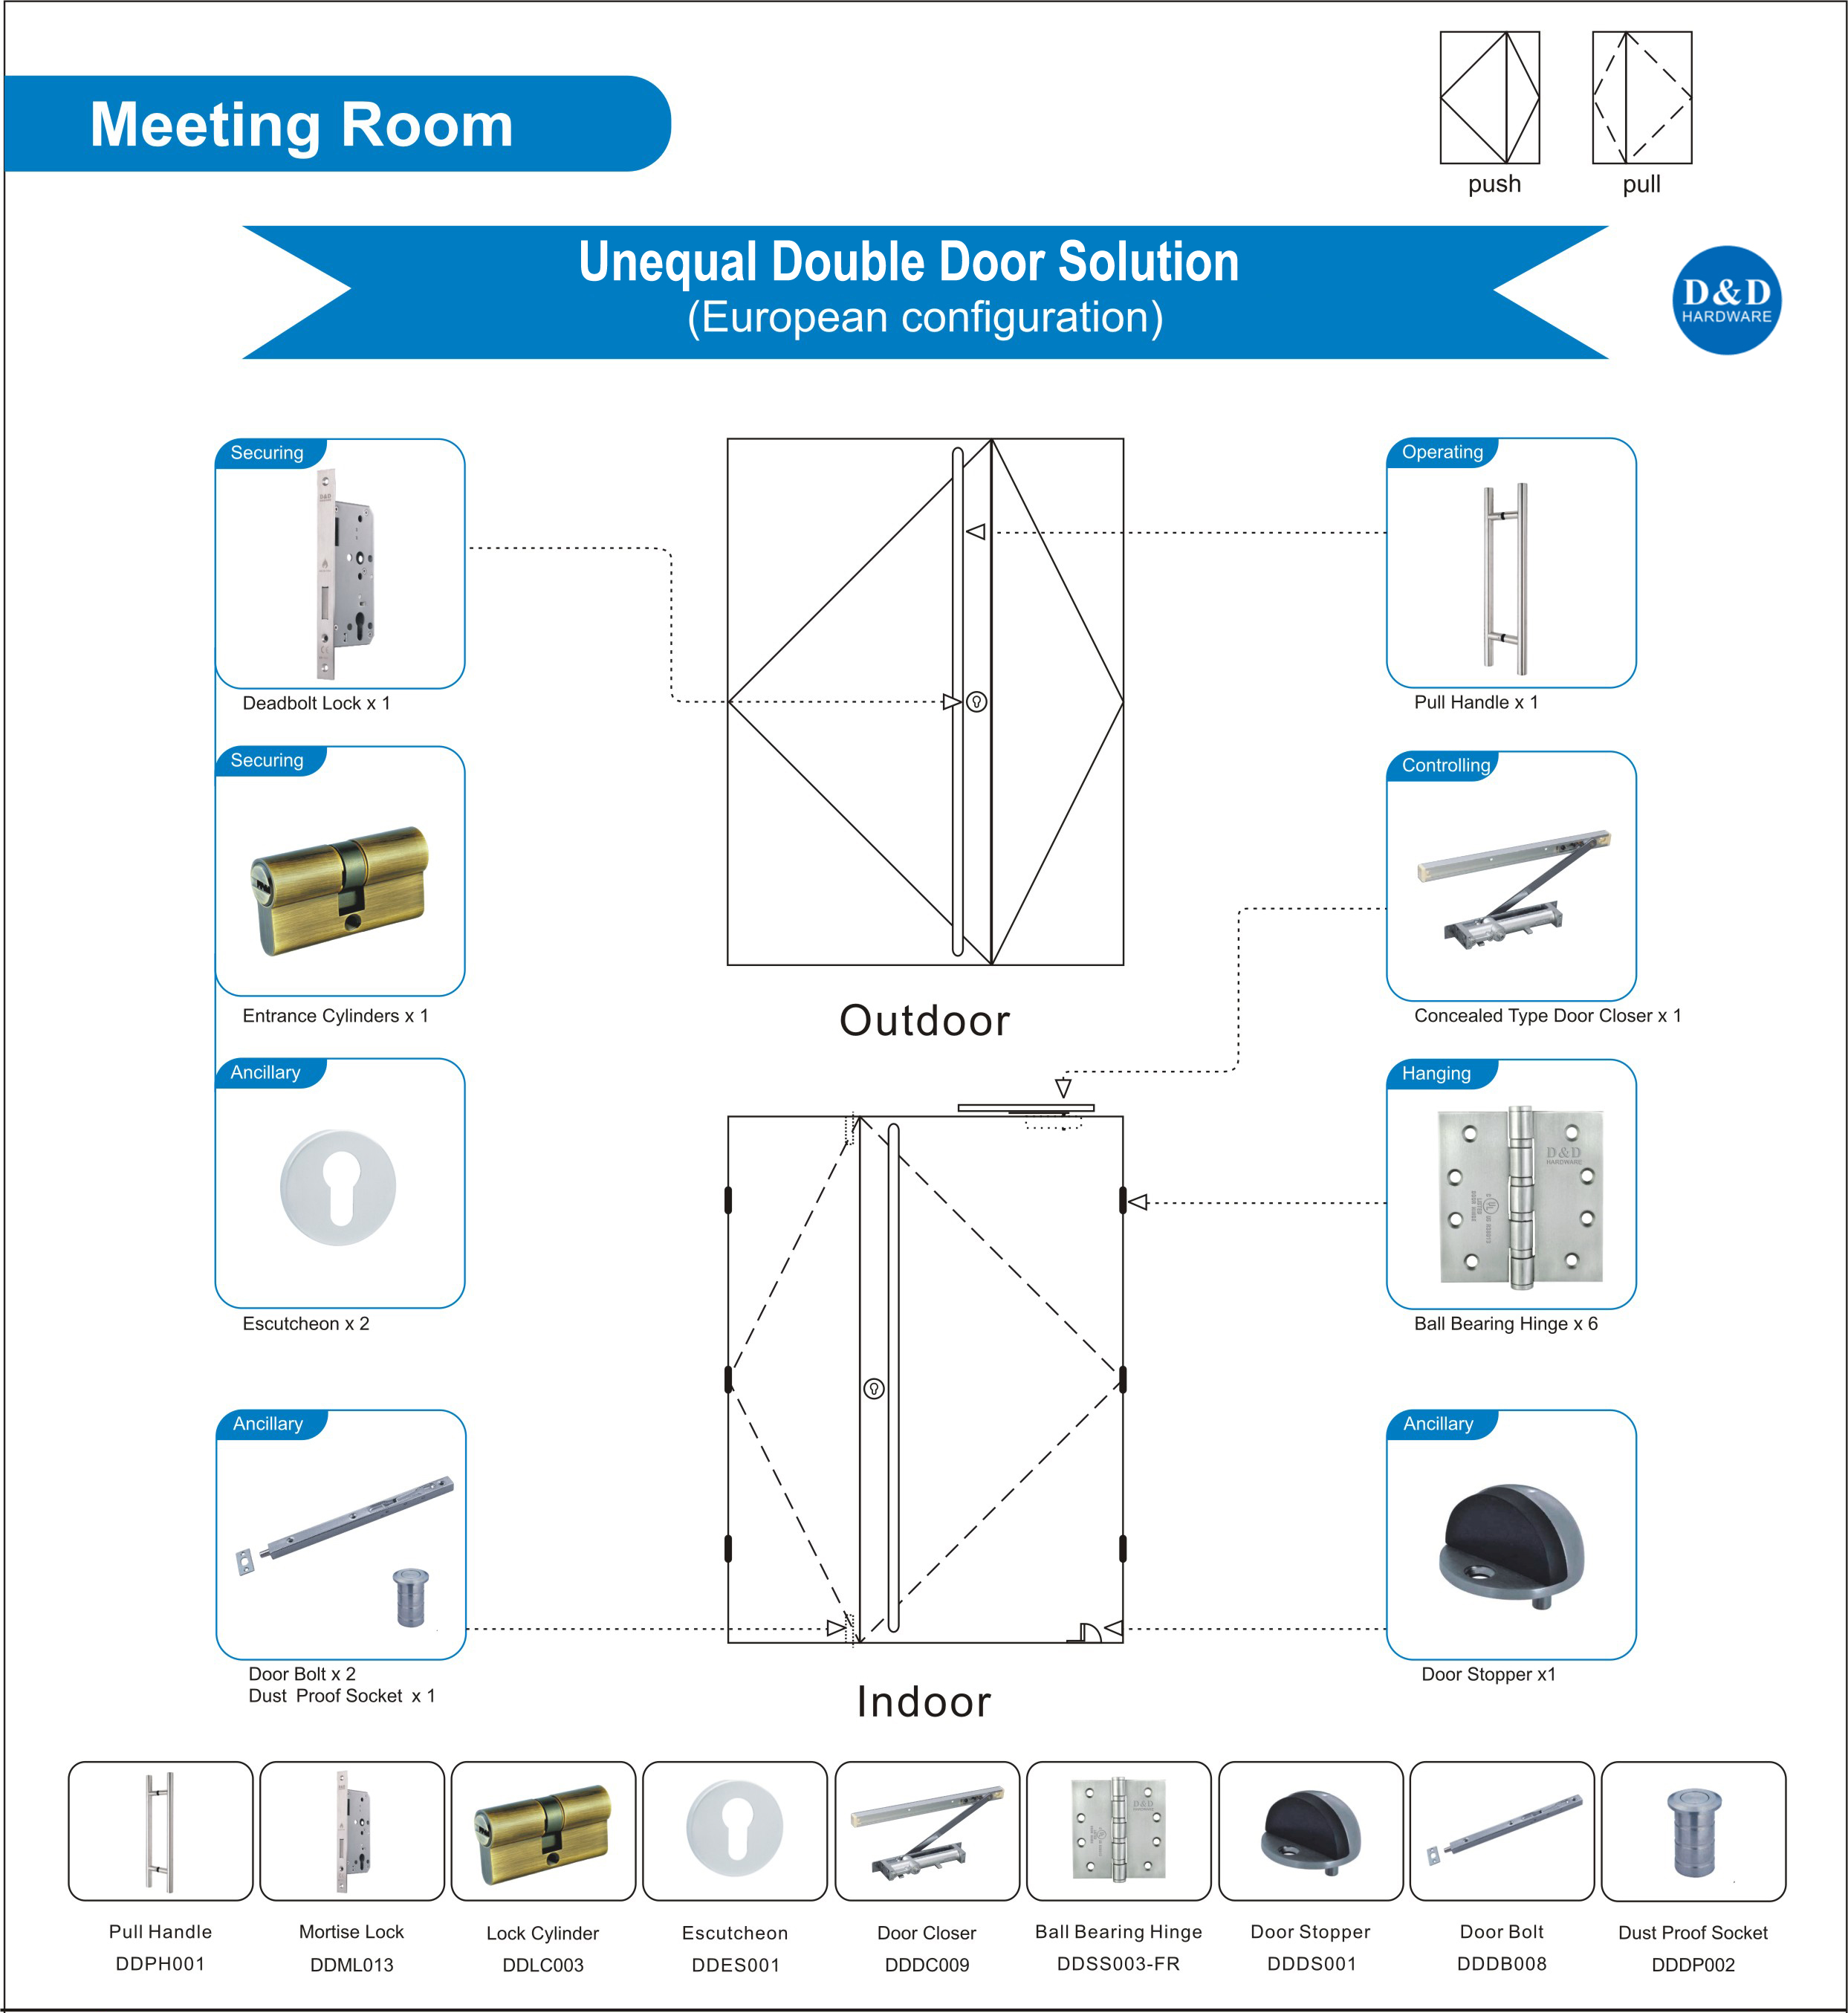 Building Hardware Solution for Meeting Room Unequal Double Door